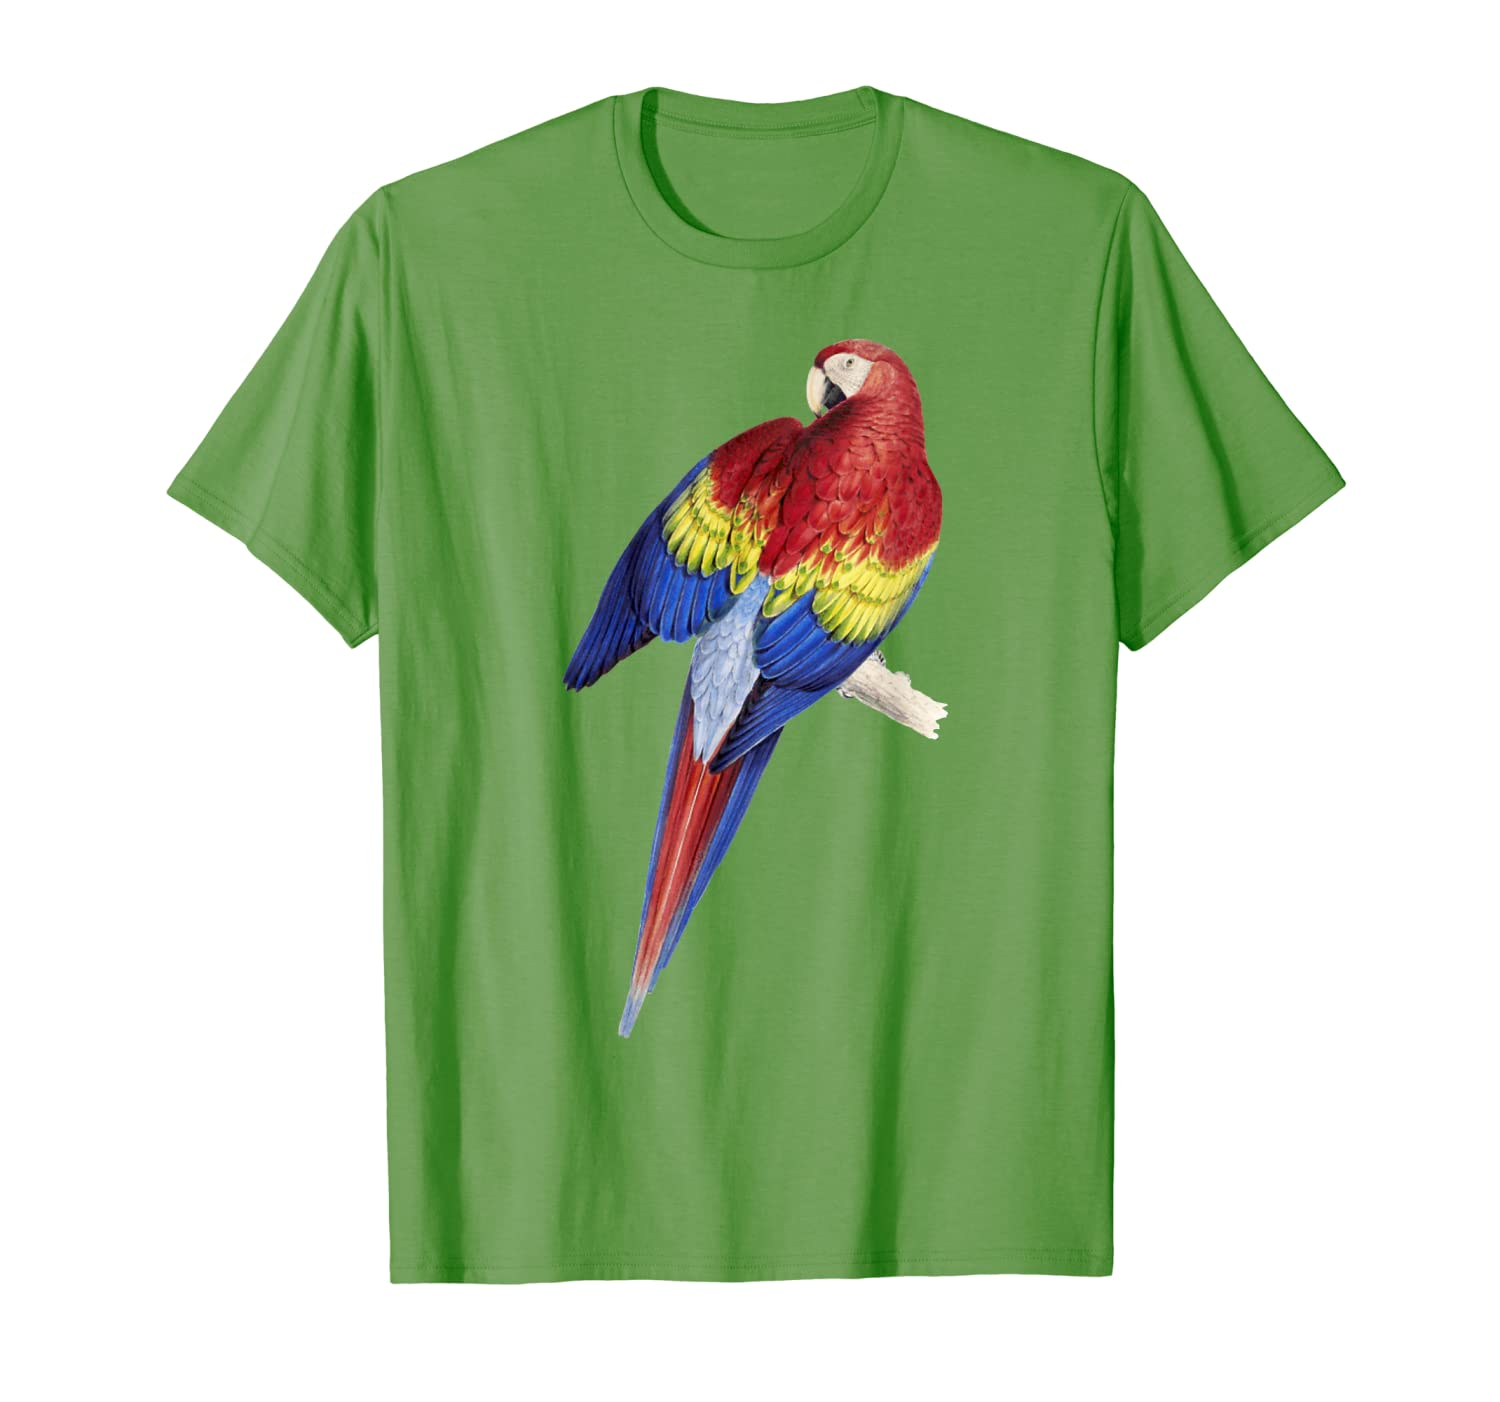 Parrot T-shirt, Scarlet Macaw Tee Jungle Bird Lover Tee-ANZ